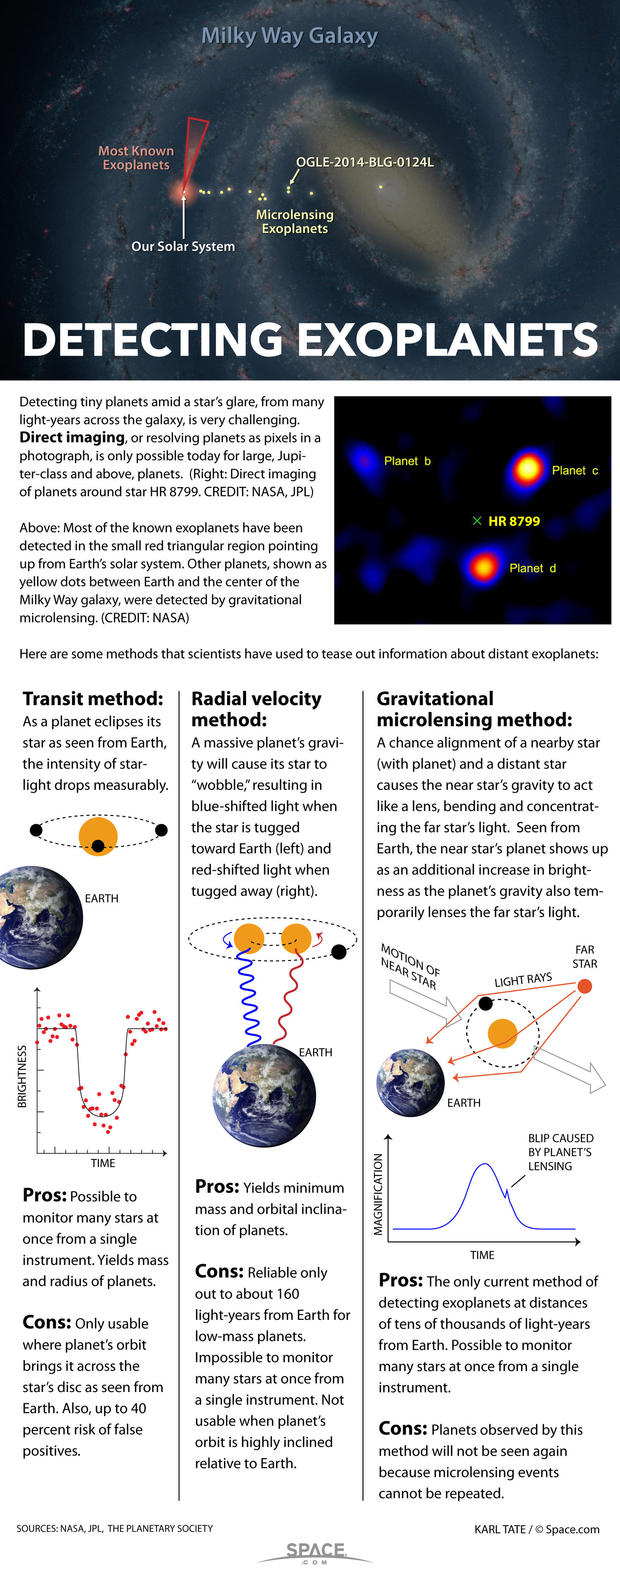 exoplanet-detection-methods-150812b-02.jpg